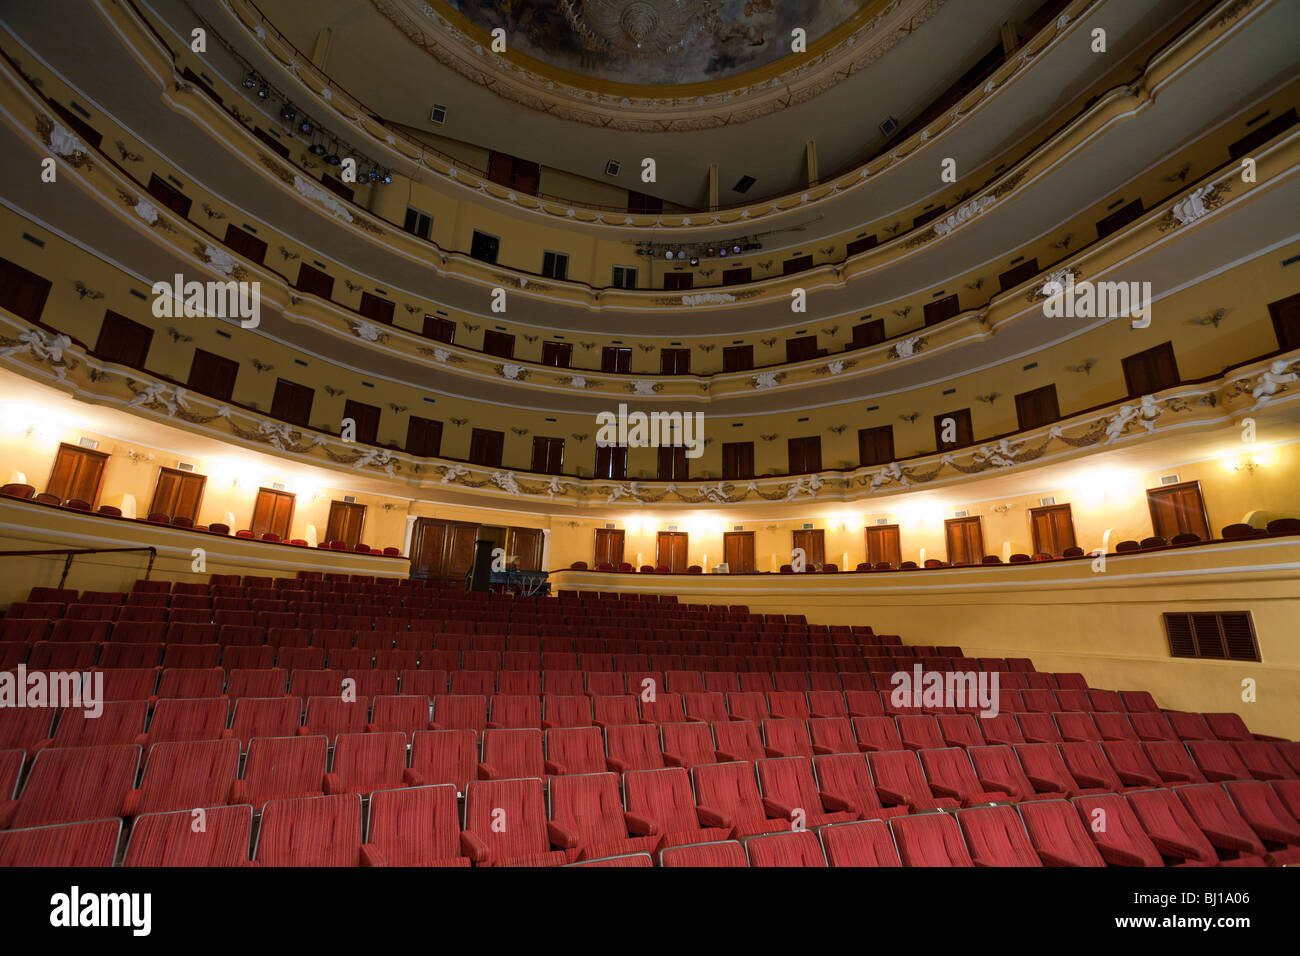 Grand Interior of Merida's opera hall and theatre.. Five layers of balconies surround the orchestra seating - Stock Image